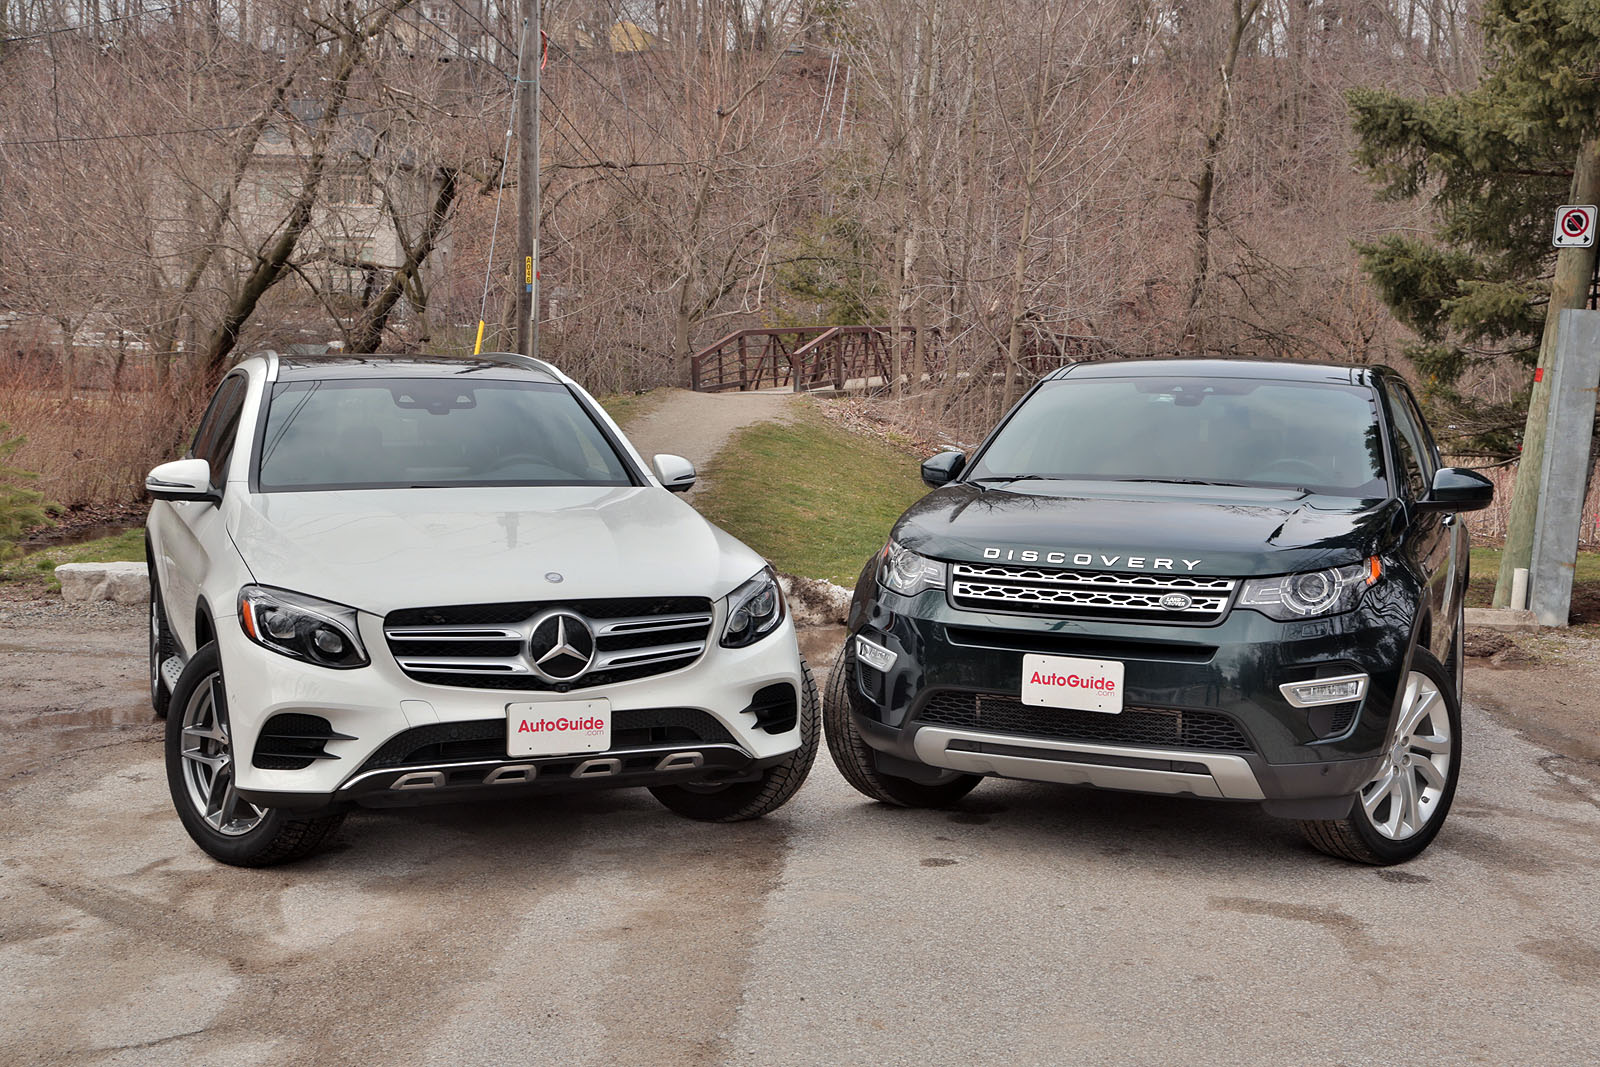 Land Rover Discovery Sport Vs Mercedes Benz Glc 300